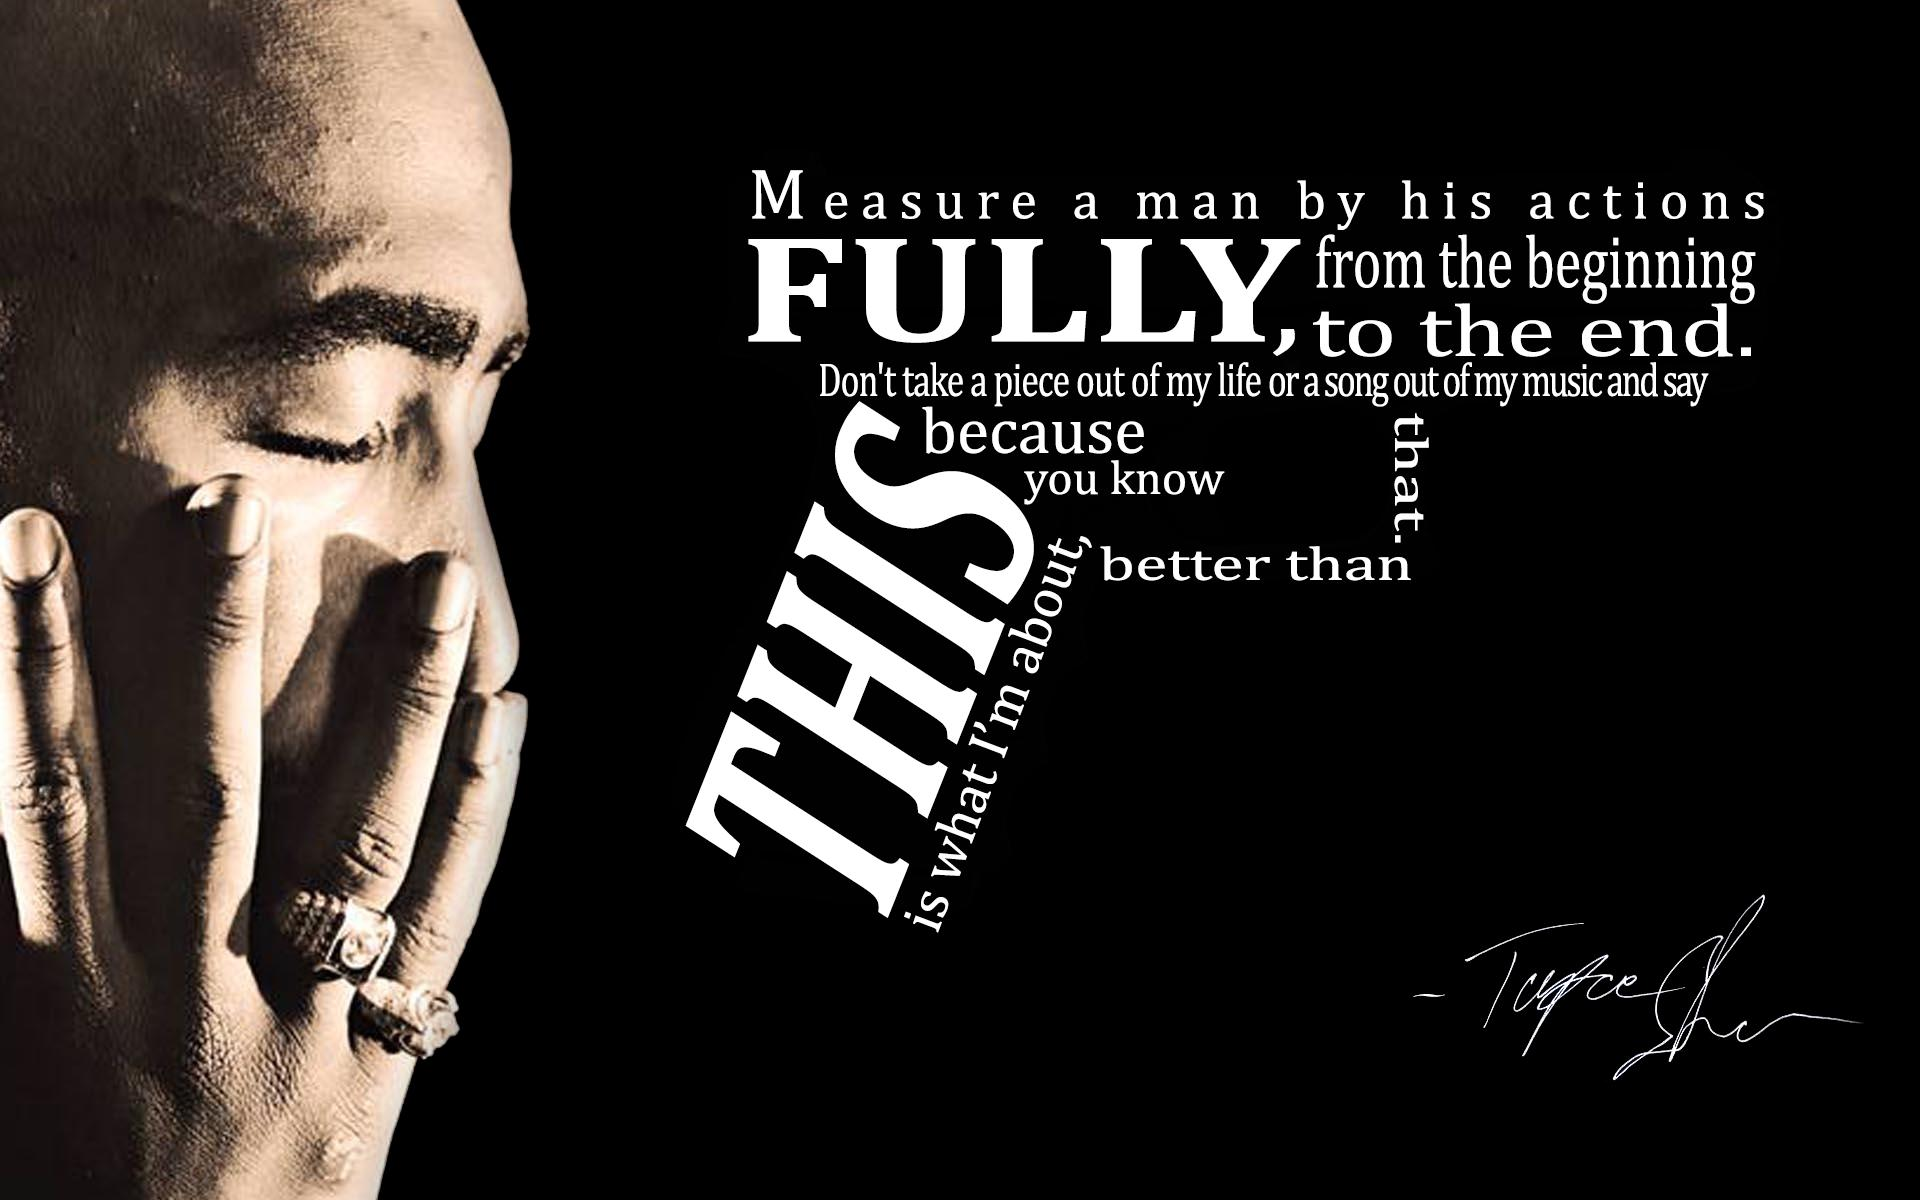 Tupac rap gangsta text quotes d wallpaper 1920x1200 45929 1920x1200